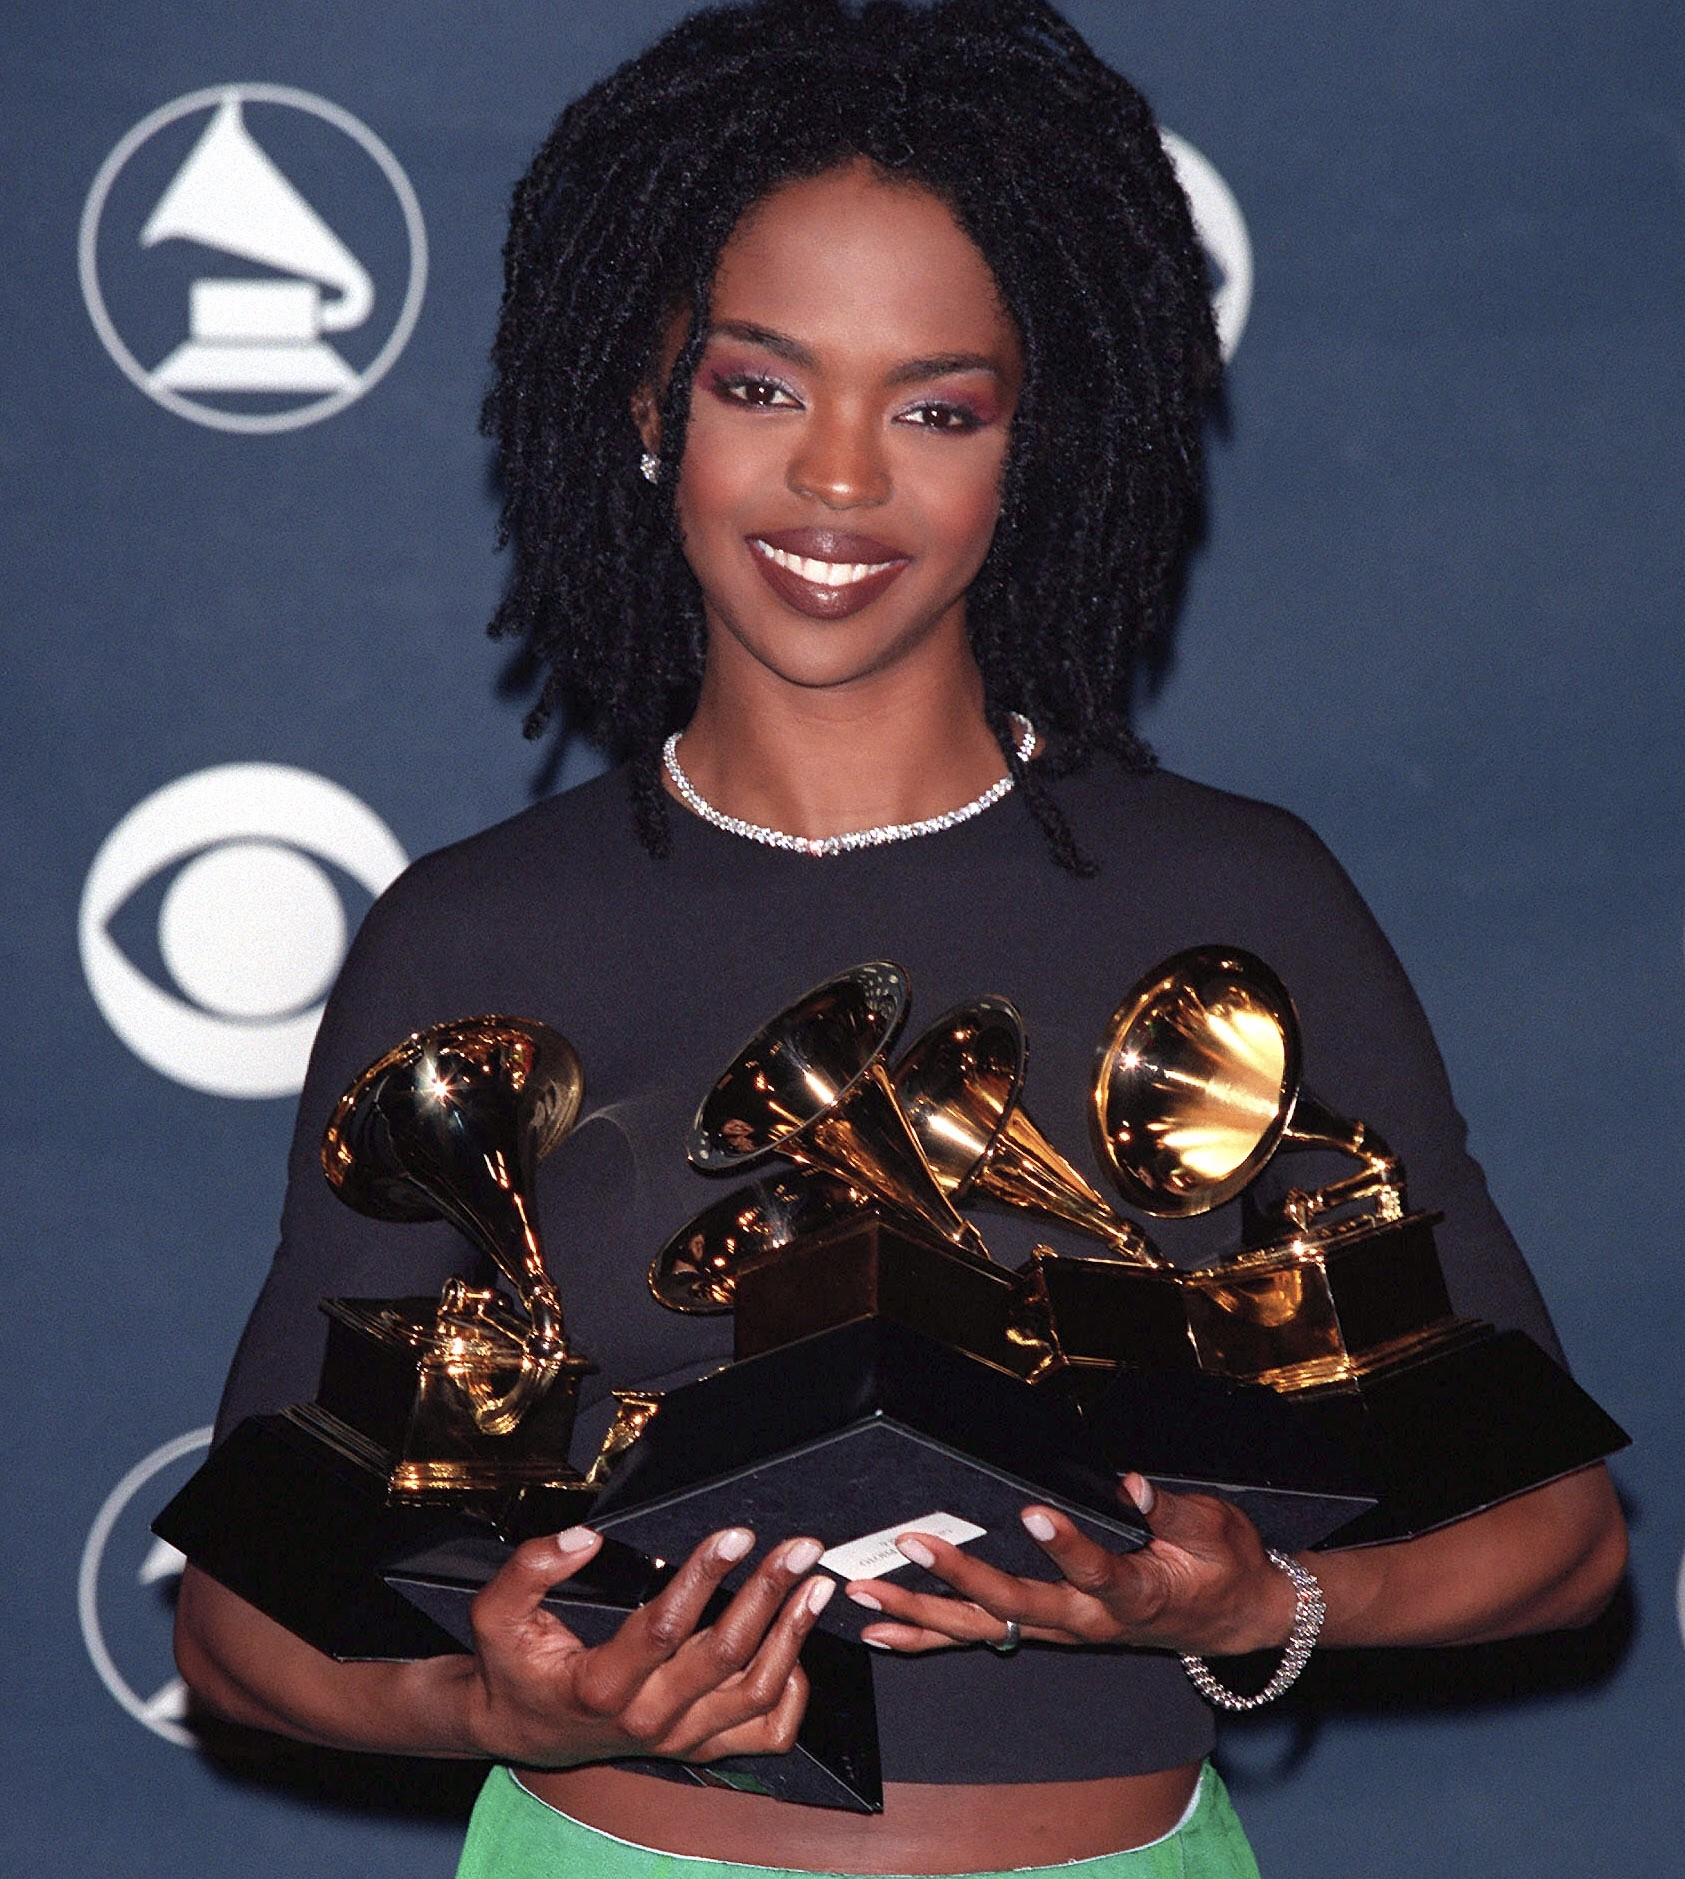 Image of Lauryn Hill holding her Grammys